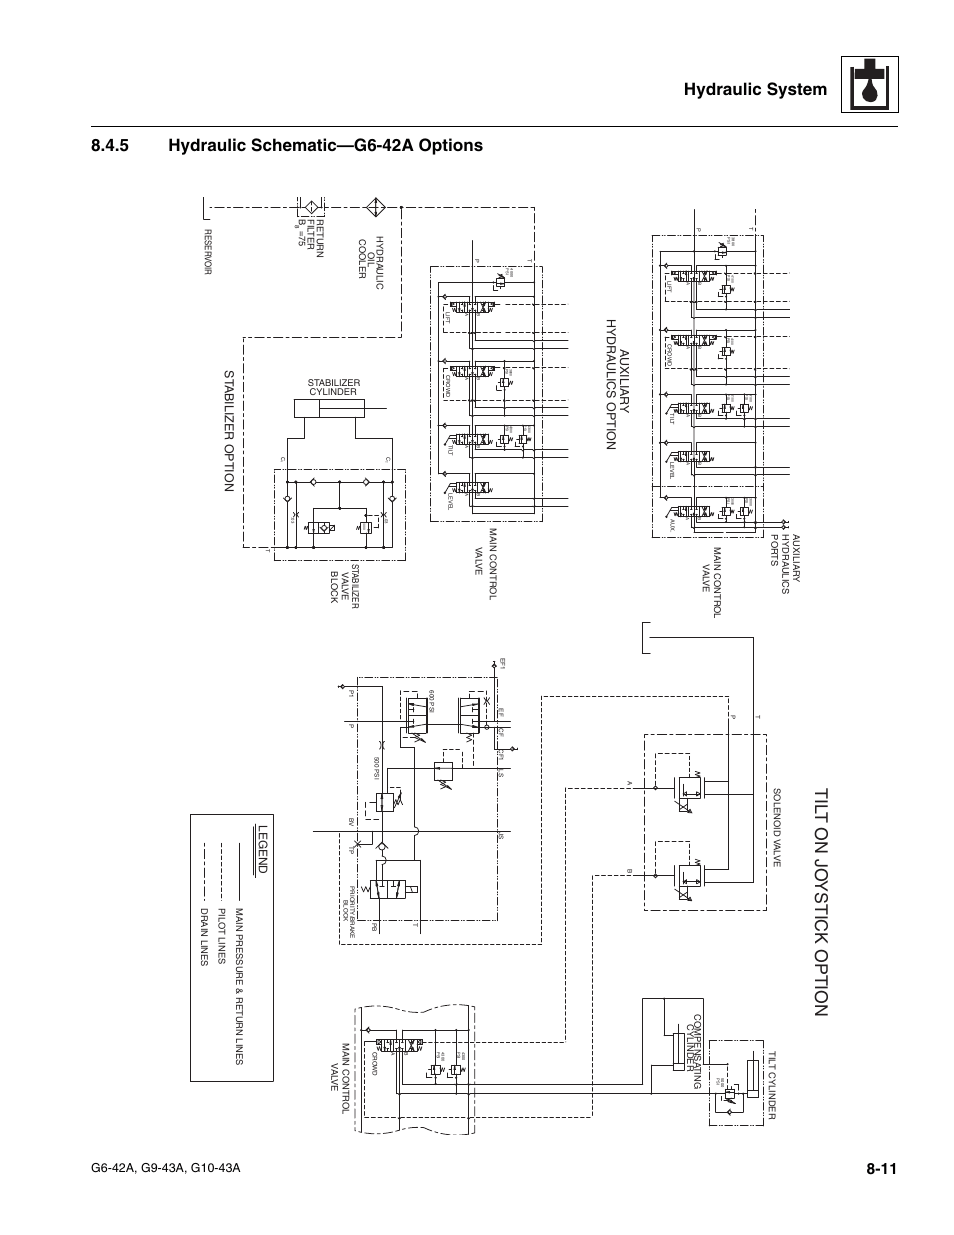 5 hydraulic schematic—g6-42a options, Hydraulic schematic